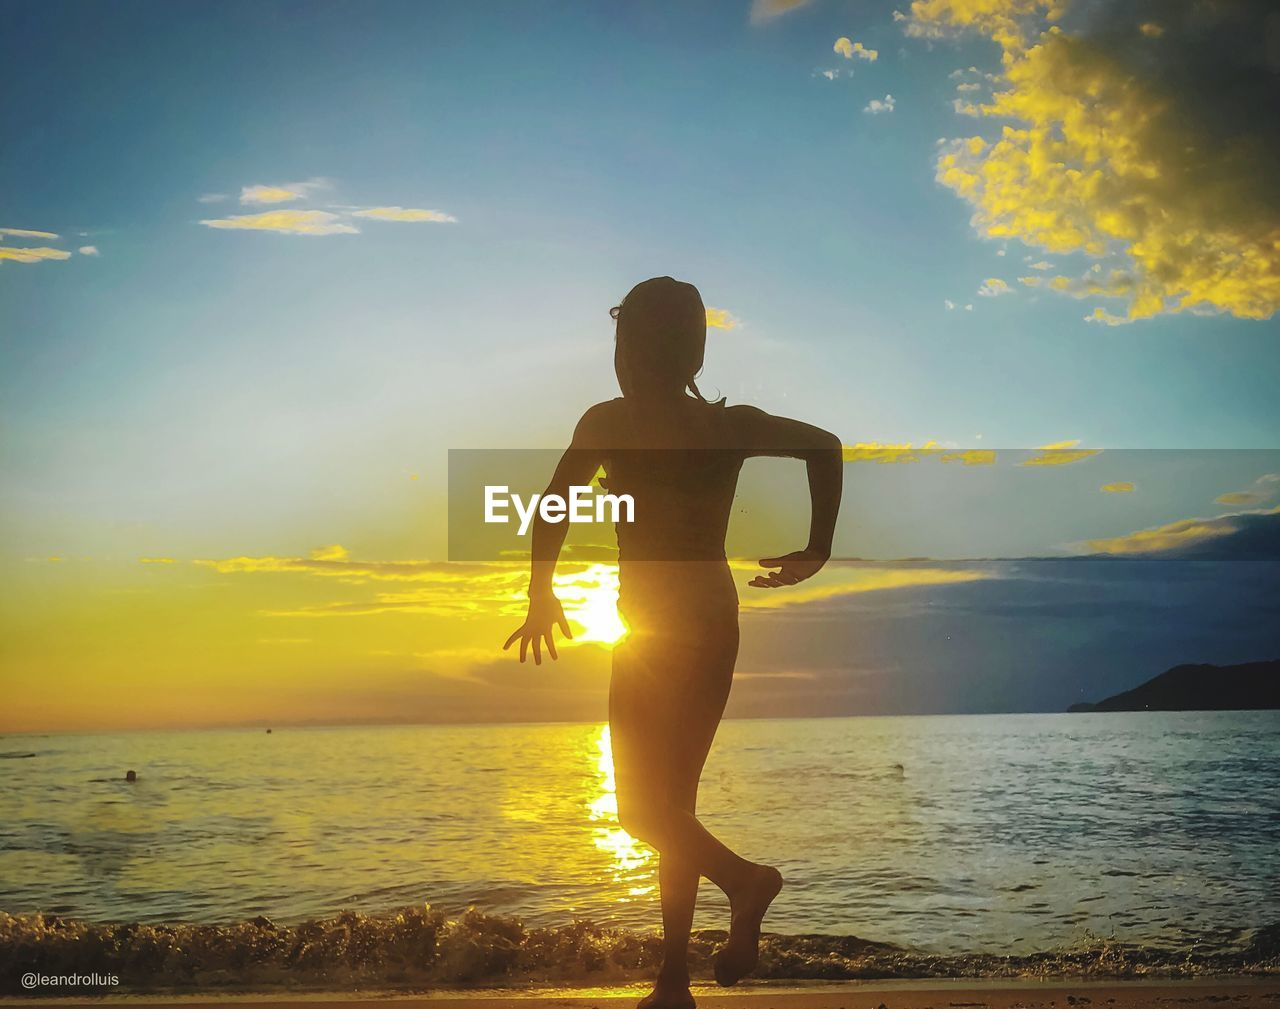 sky, sunset, water, sea, beauty in nature, real people, lifestyles, one person, scenics - nature, cloud - sky, beach, land, nature, silhouette, standing, leisure activity, full length, horizon over water, horizon, outdoors, teenager, self improvement